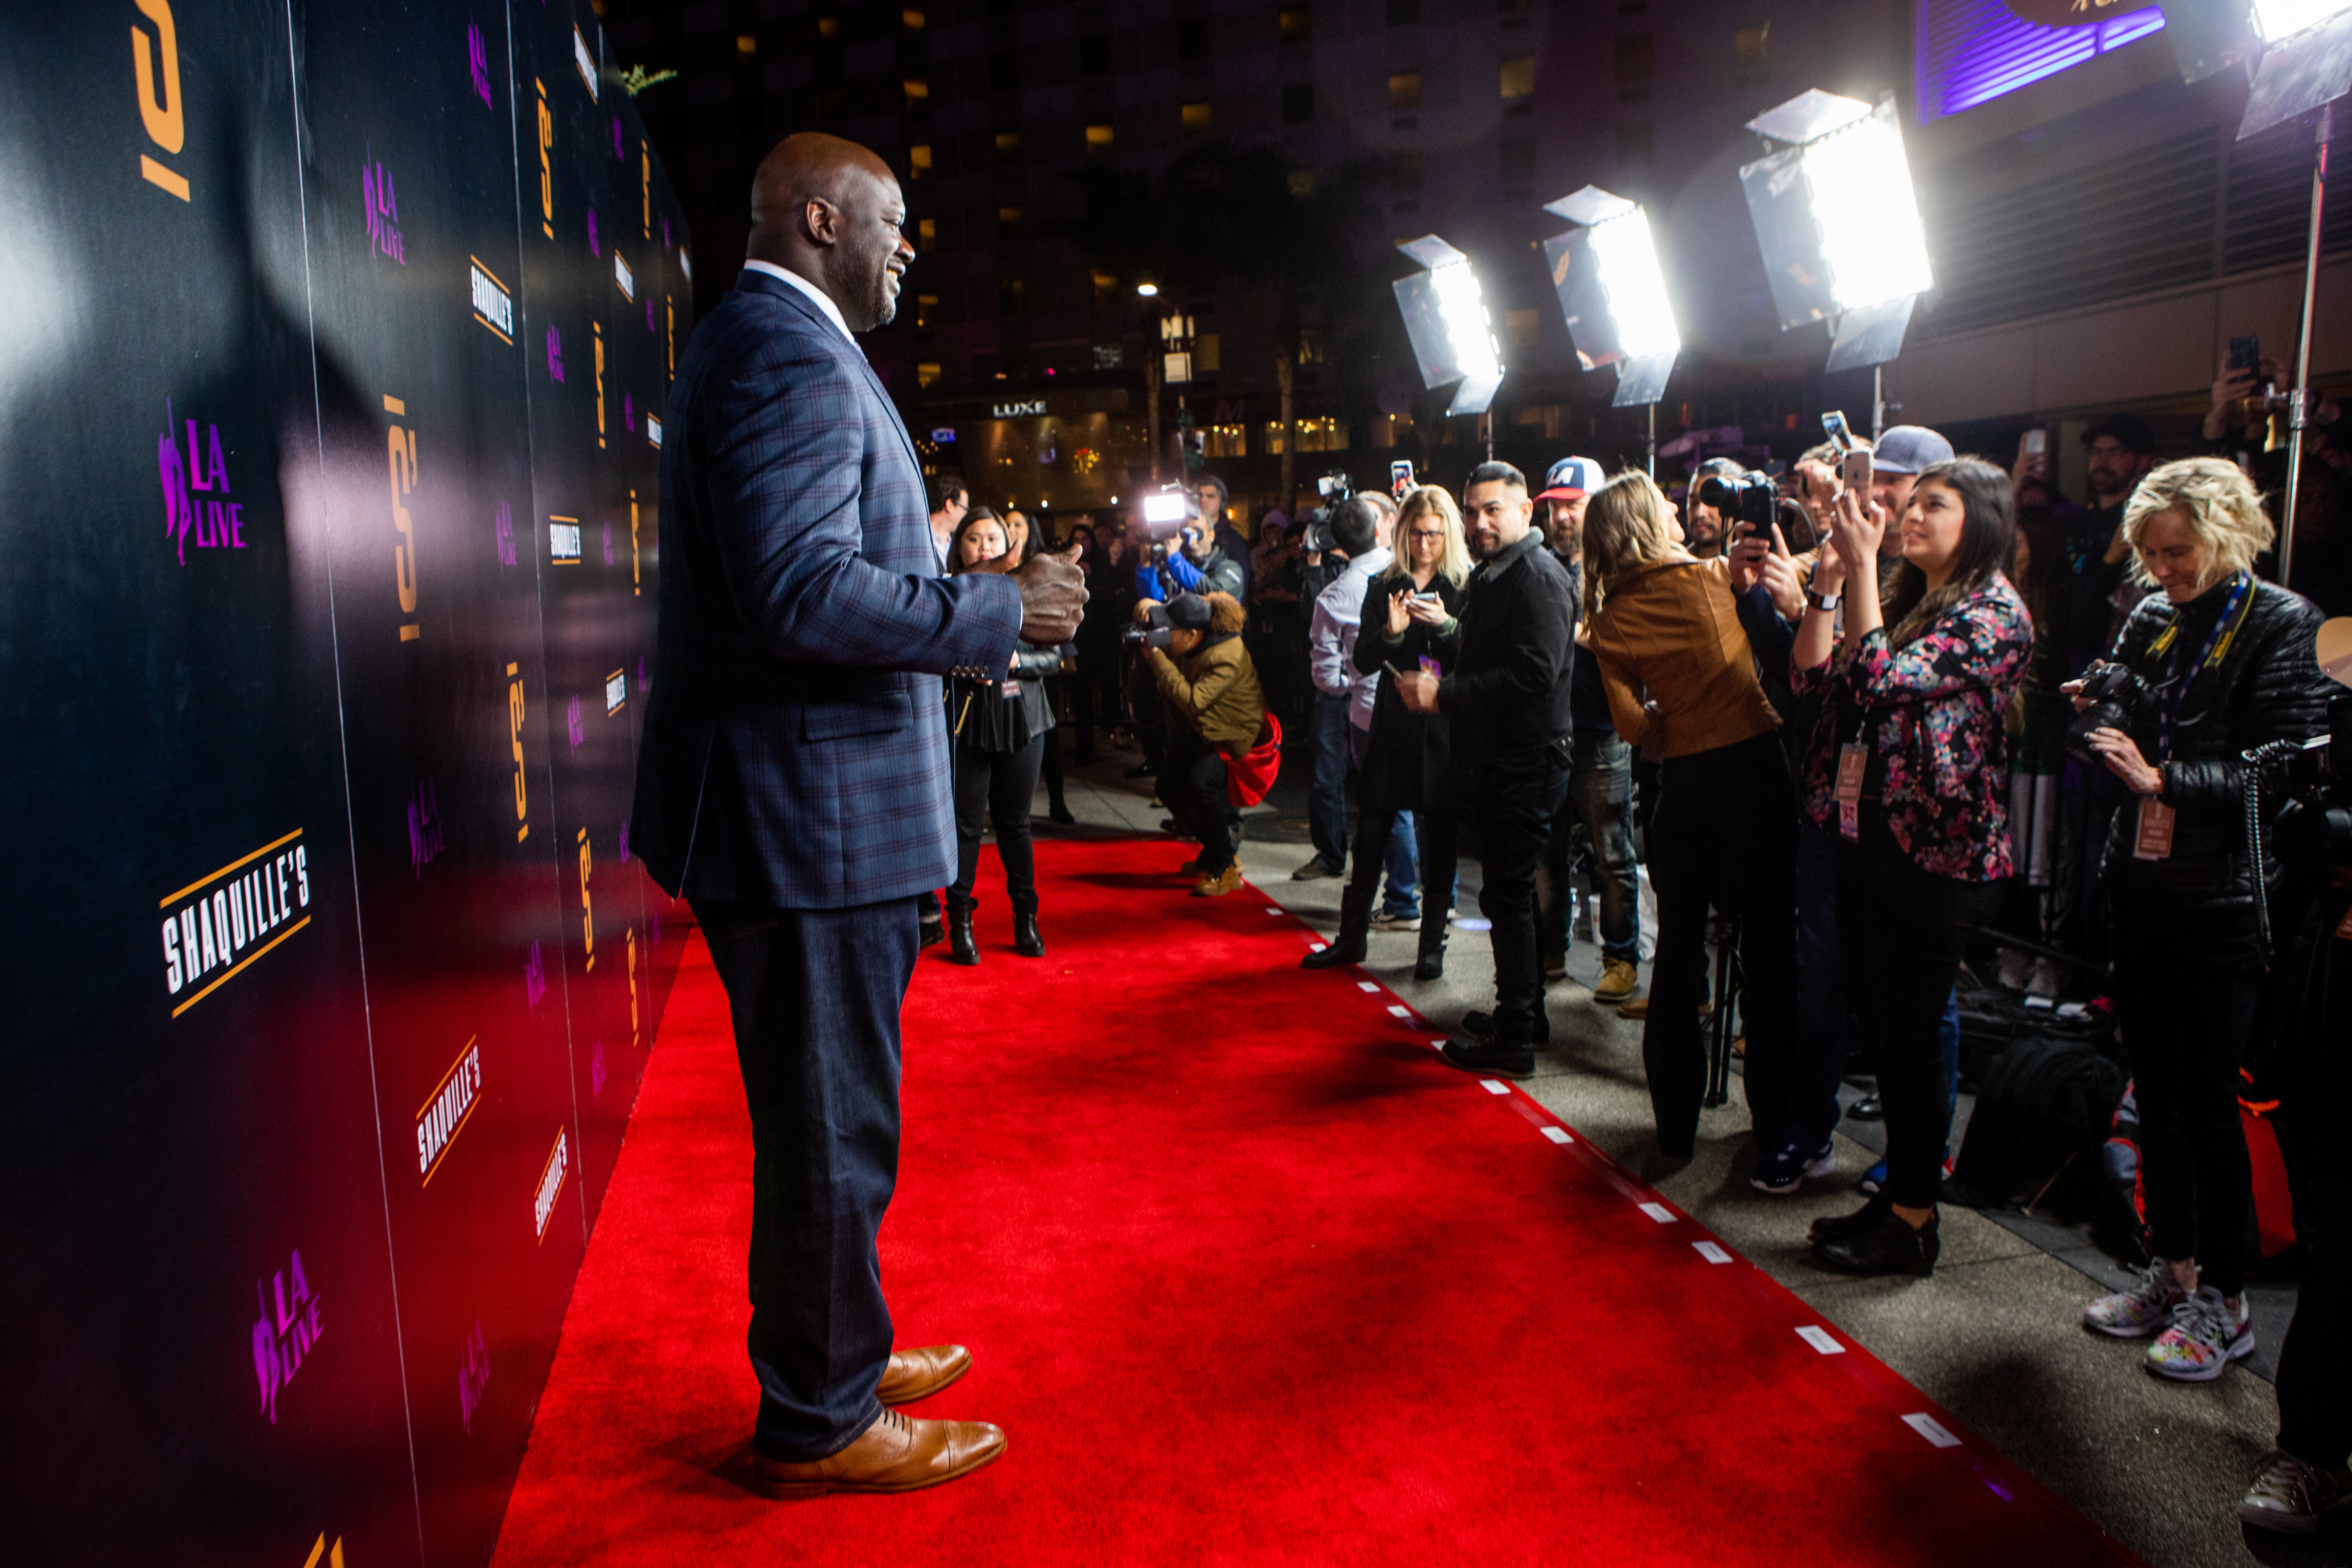 Shaquille O'Neal Opens SHAQUILLE'S at LA Live